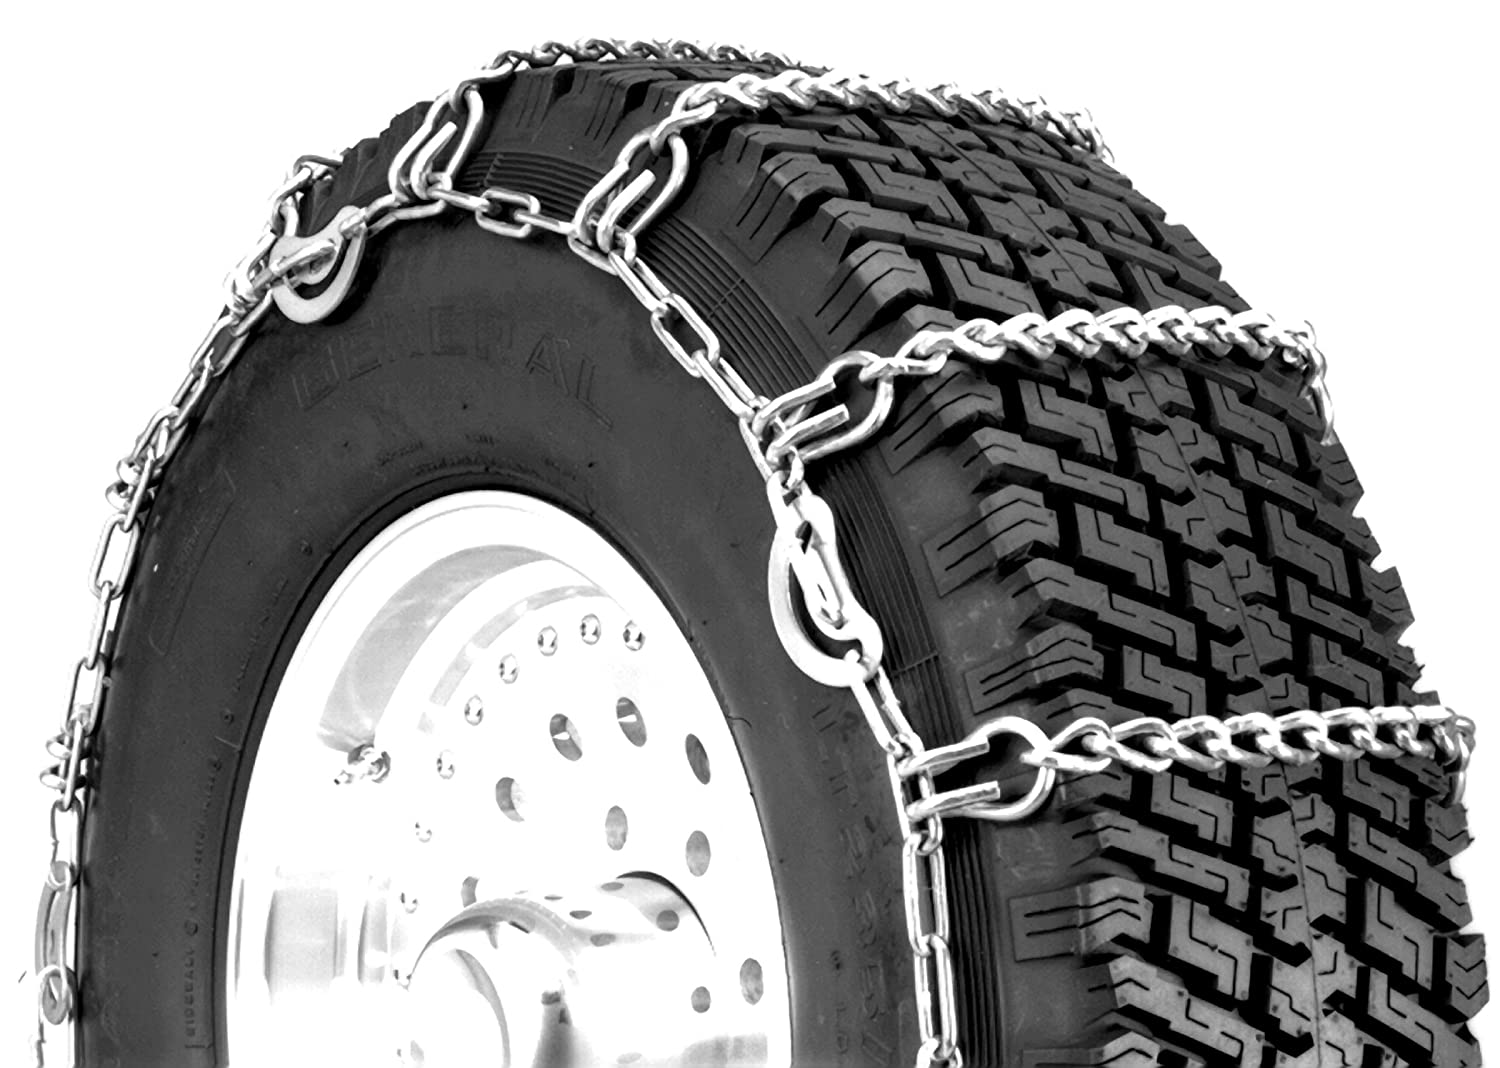 Security Chain Company QG2221CAM Quik Grip Light Truck Type CAM LSH Tire Traction Chain, Set of 2